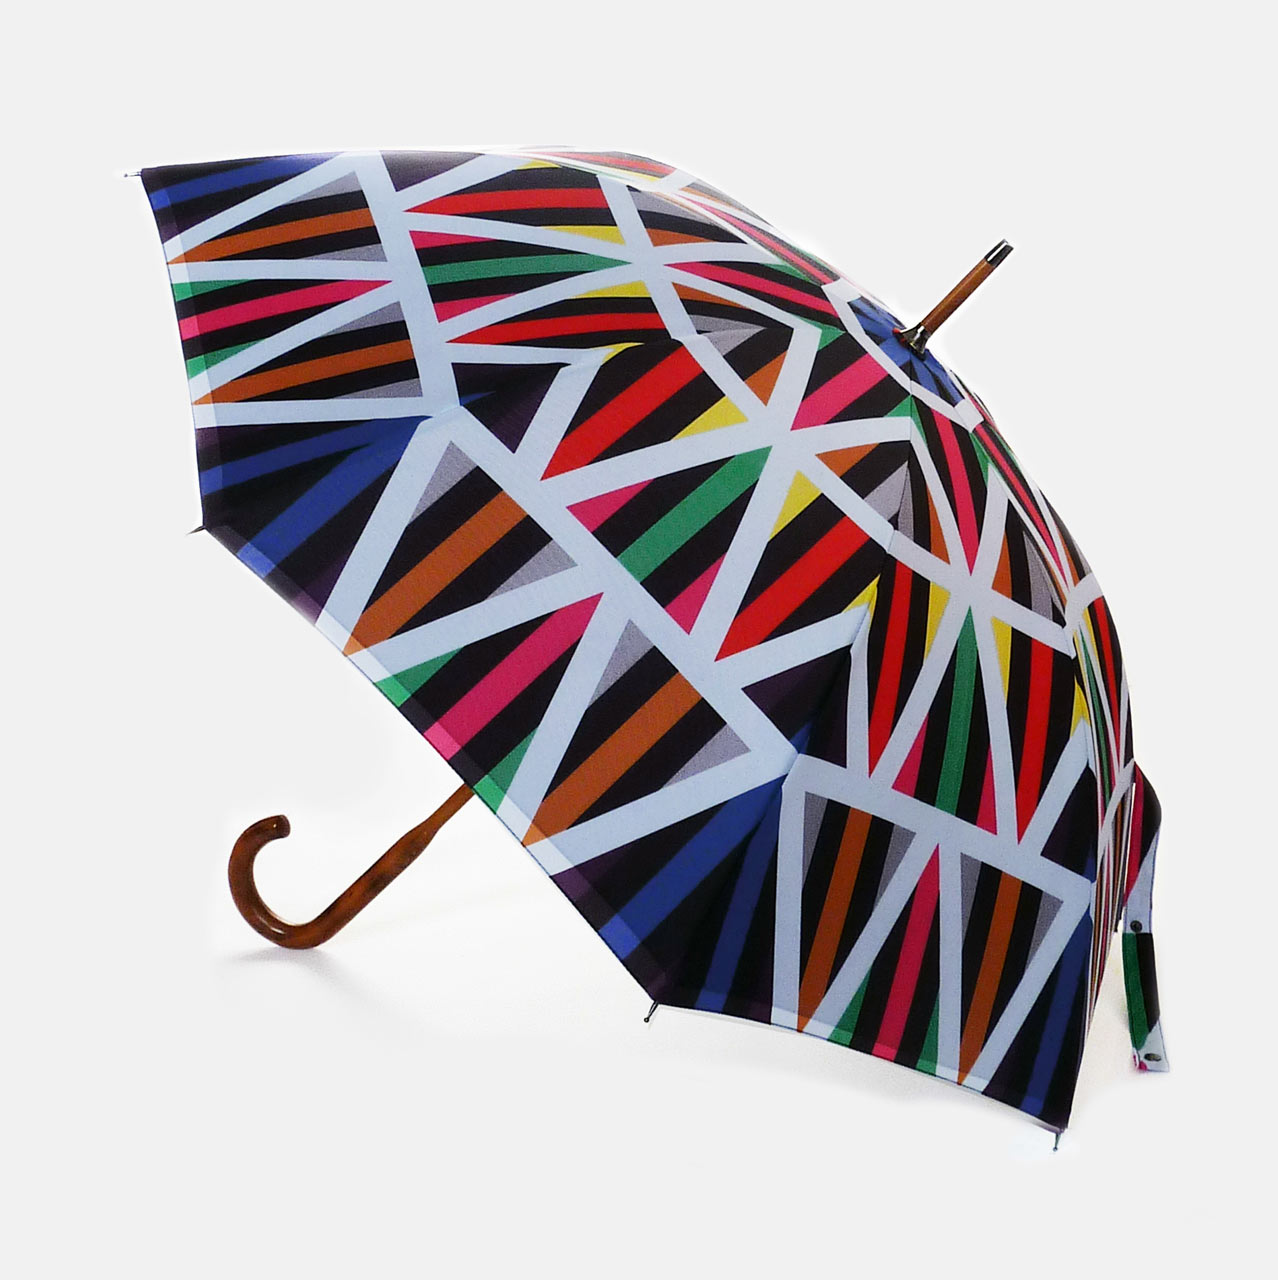 DavidDavid-Walking-Stick-Umbrella-design-produit-design-graphique